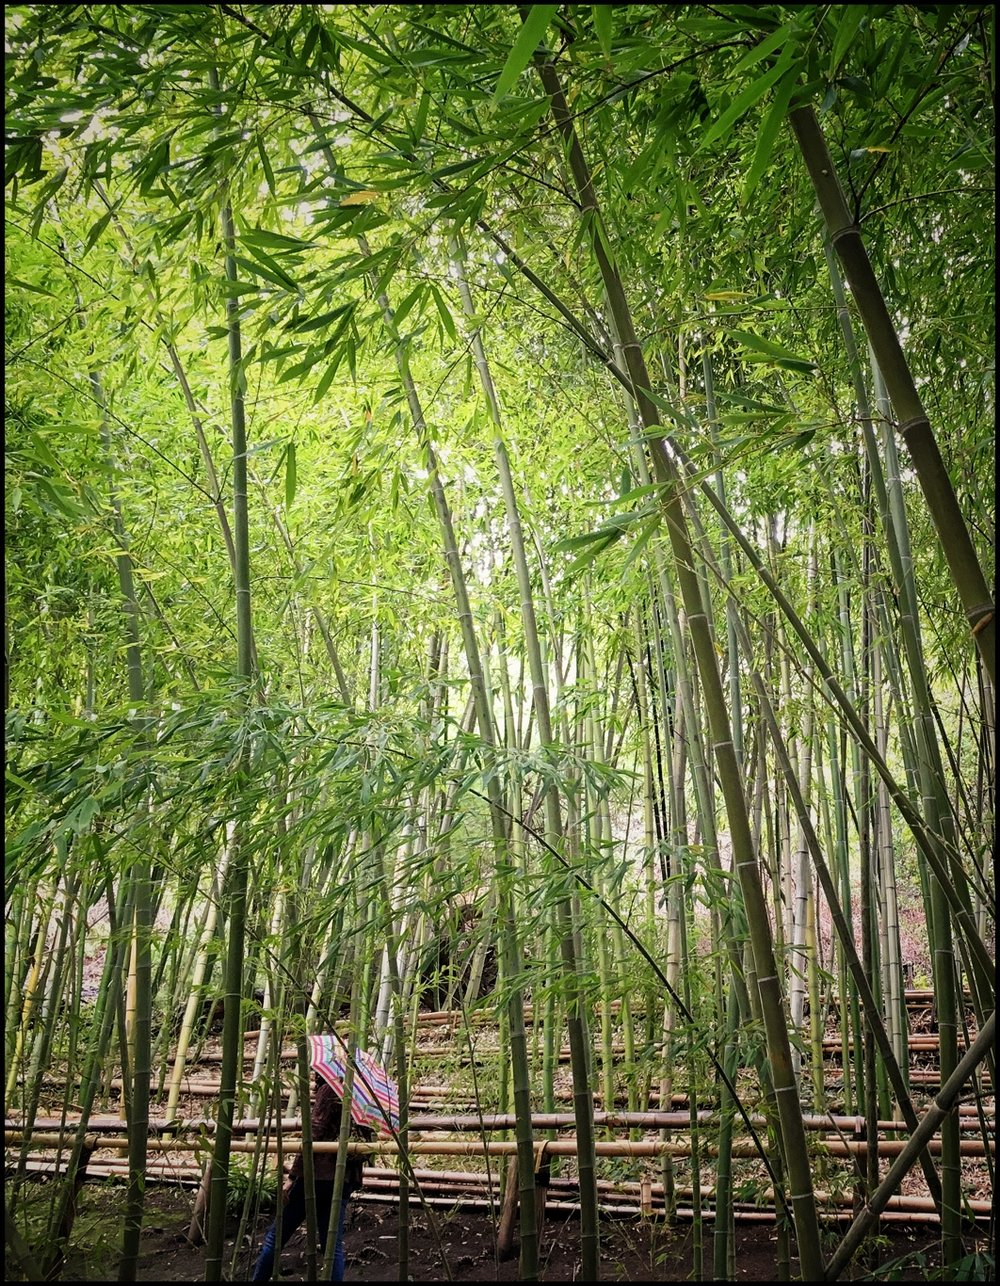 Umbrella in bamboo grove by Becky Jaffe.jpeg